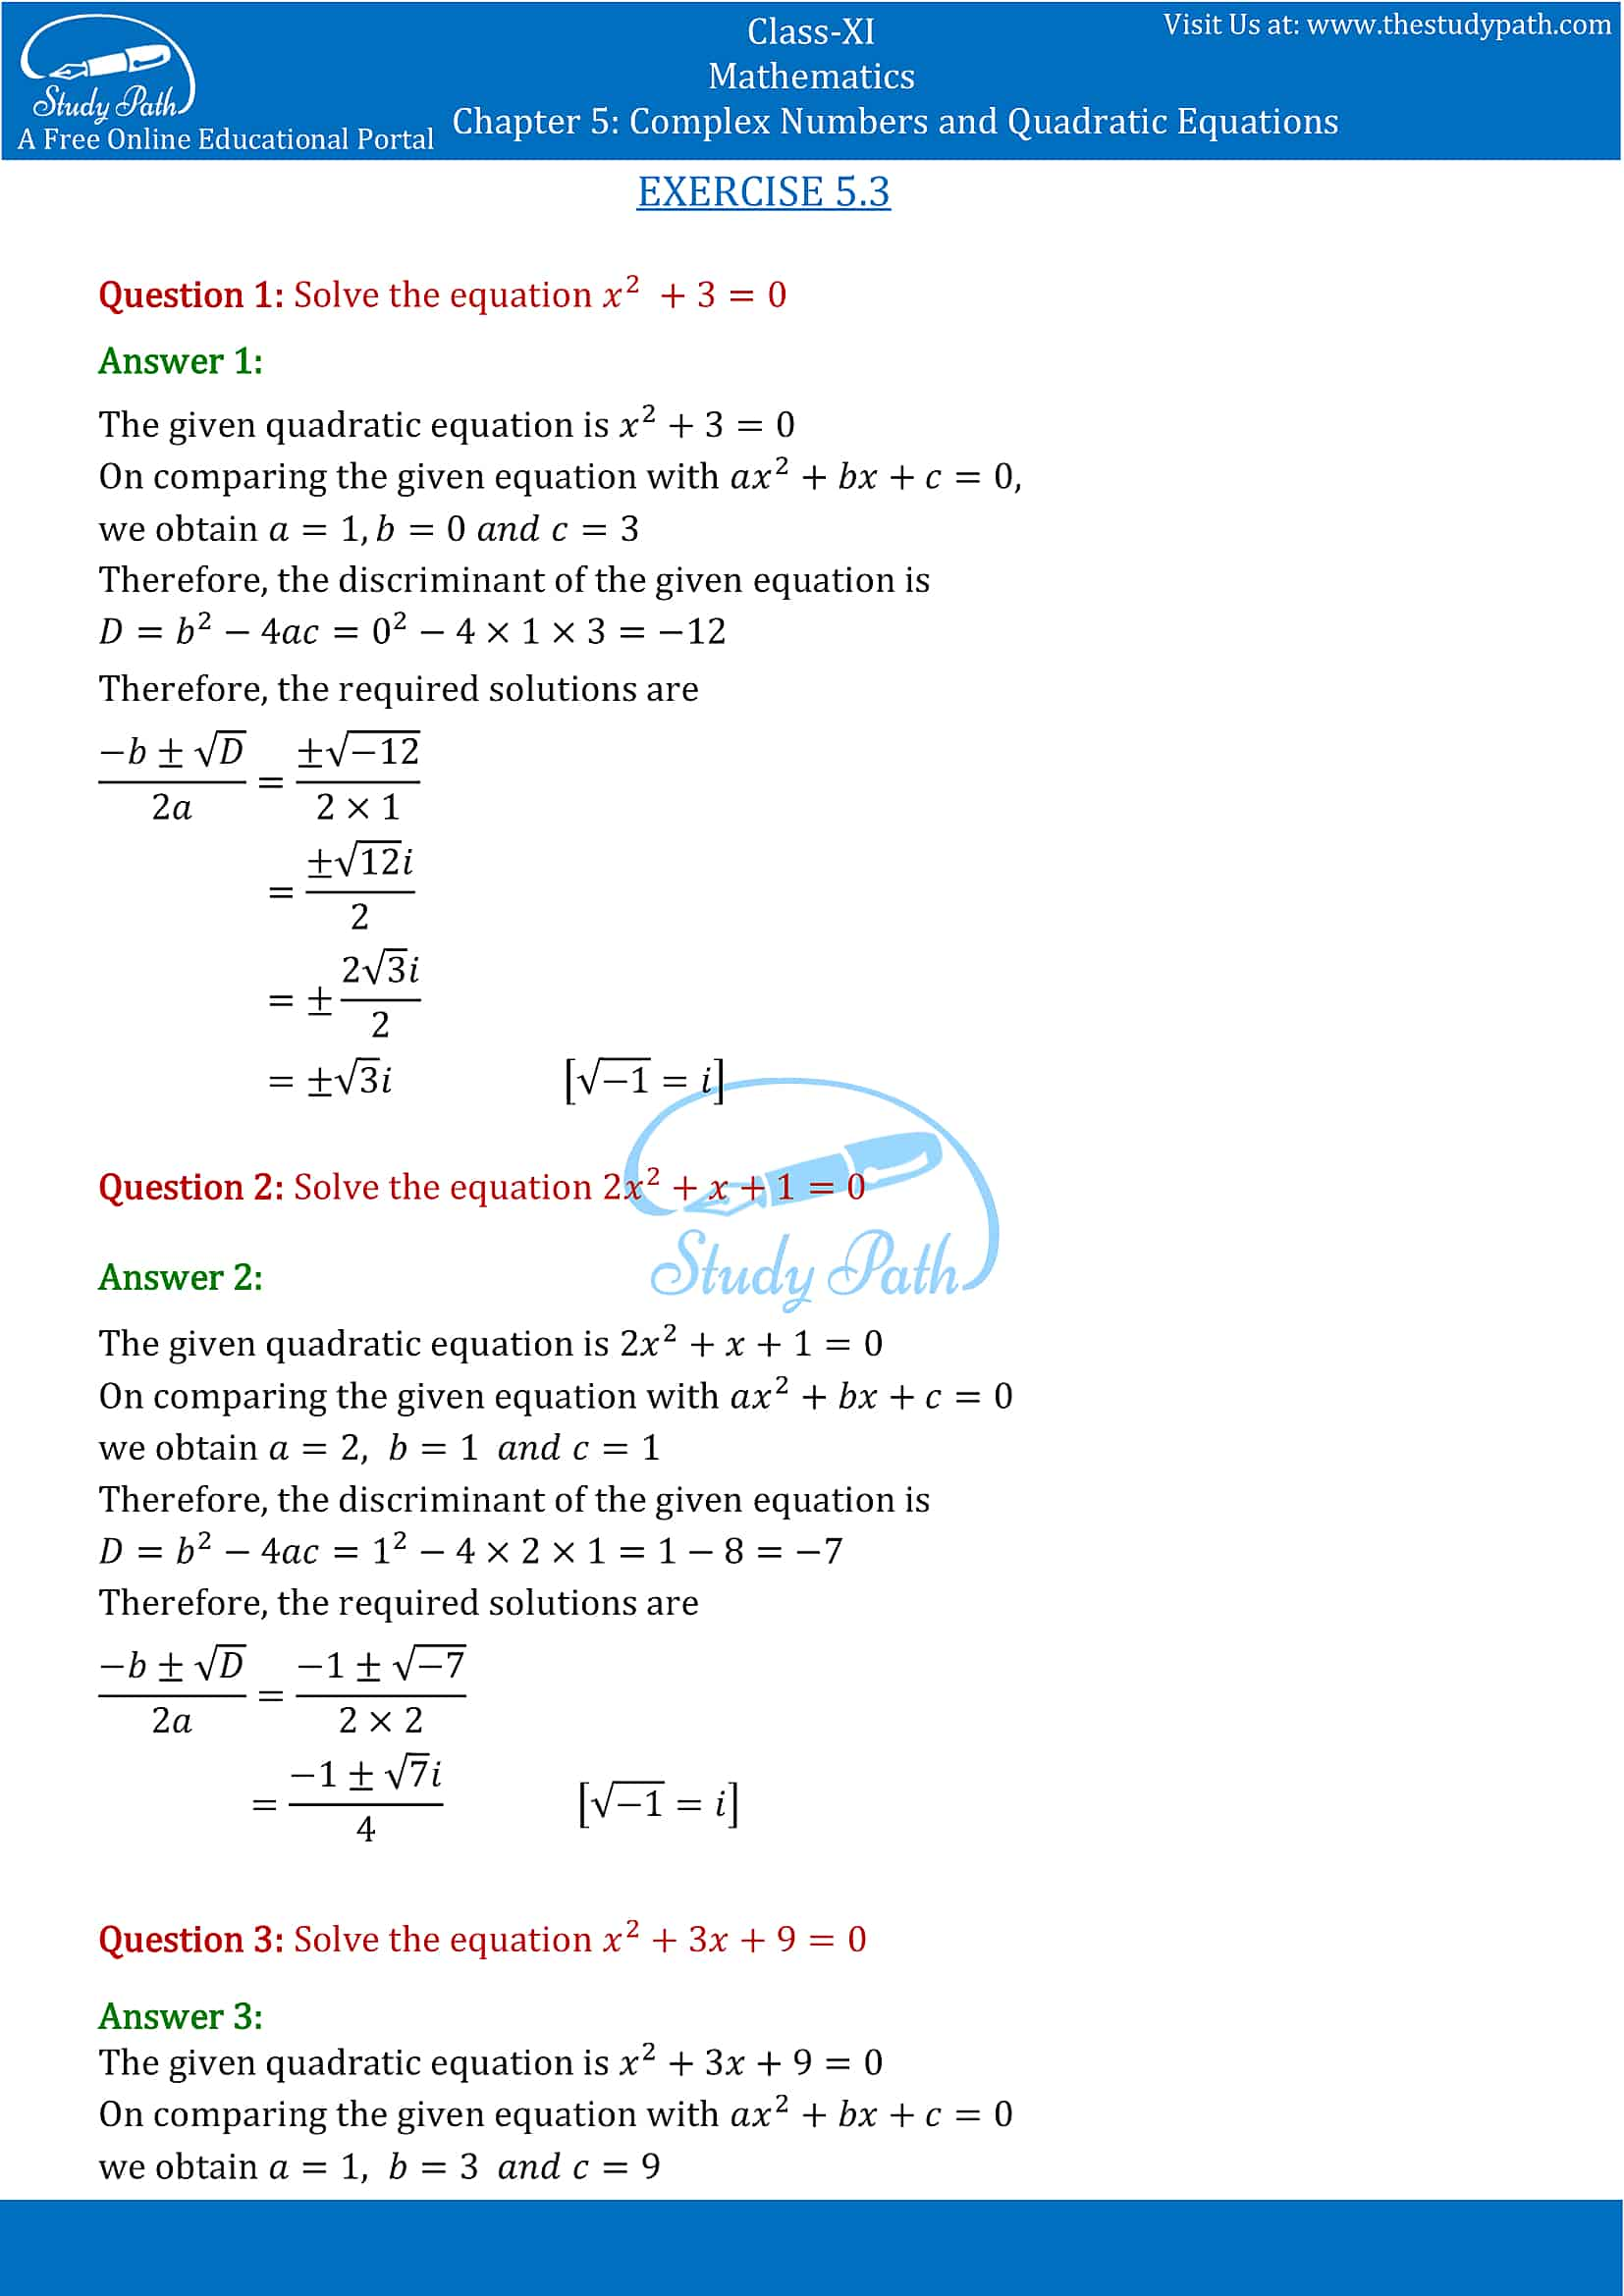 NCERT Solutions for Class 11 Maths chapter 5 Complex Numbers and Quadratic Equations Exercise 5.3 part-1